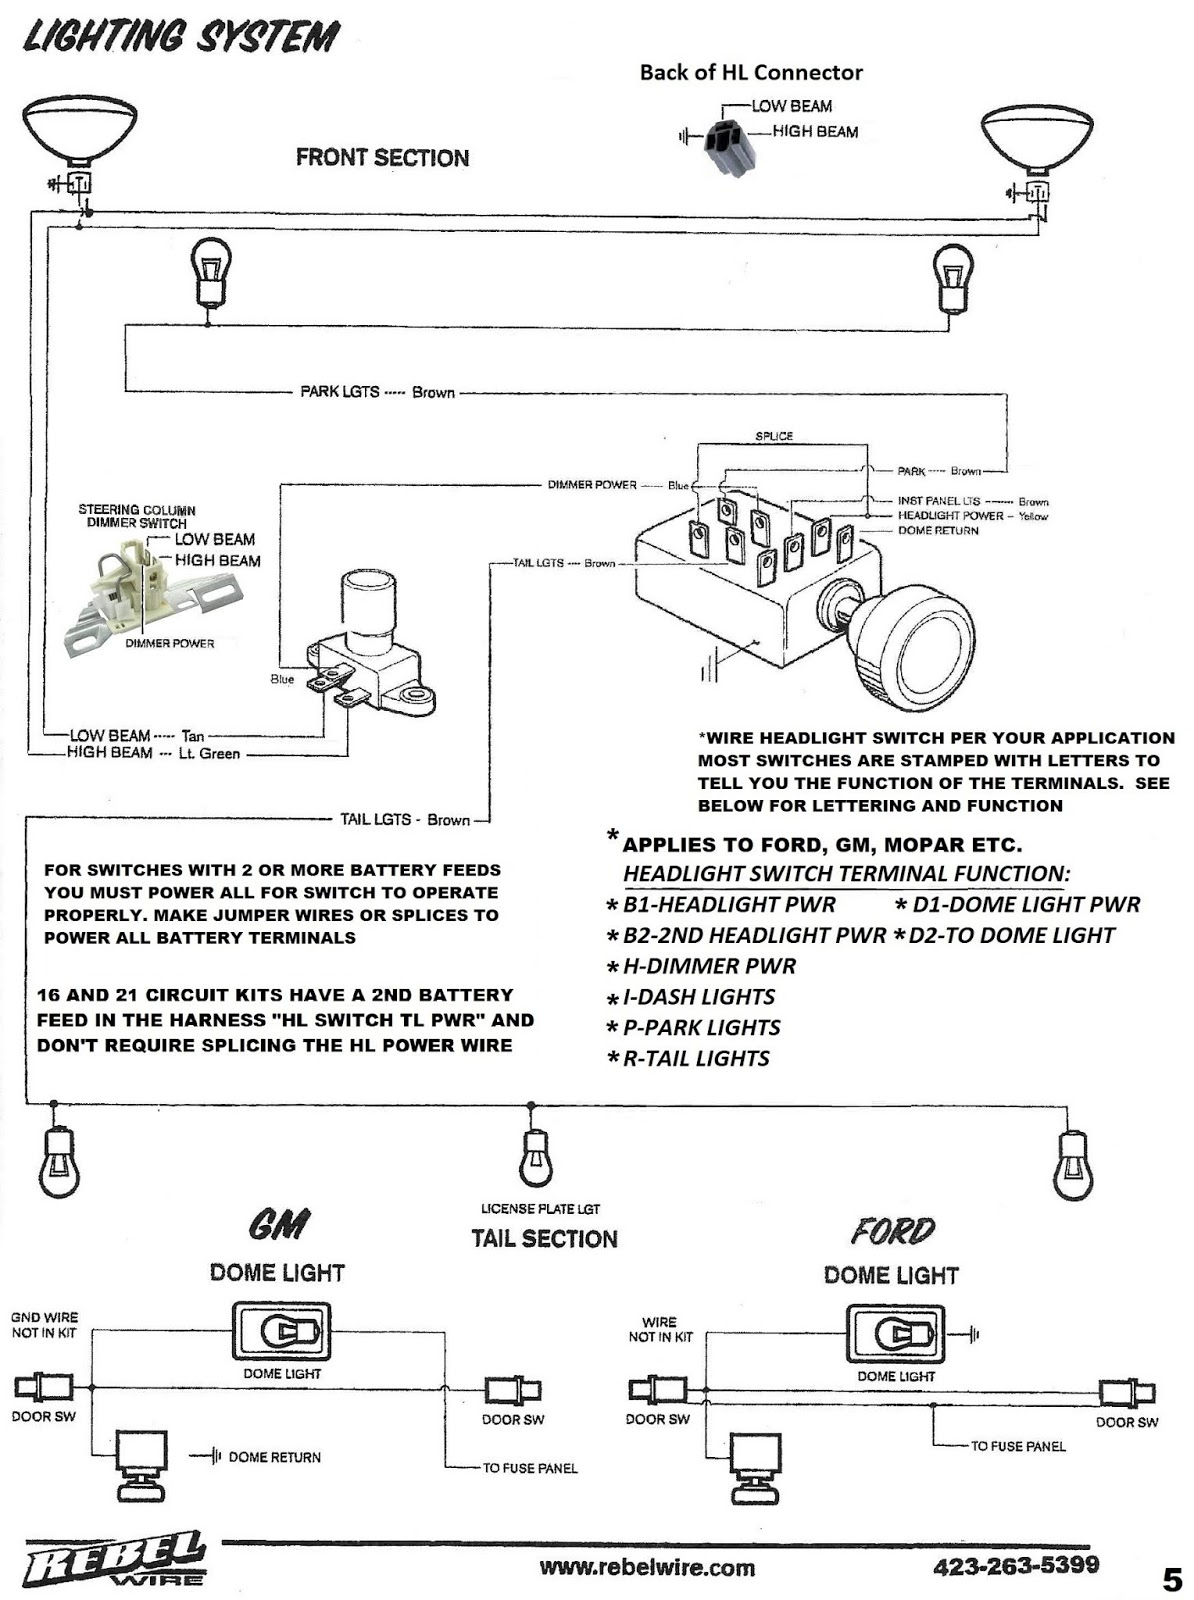 vp instrument cluster help asapl3vndashwiringjpg wiring diagramdome light wiring diagram together with chevy dome light wiring [ 1194 x 1600 Pixel ]